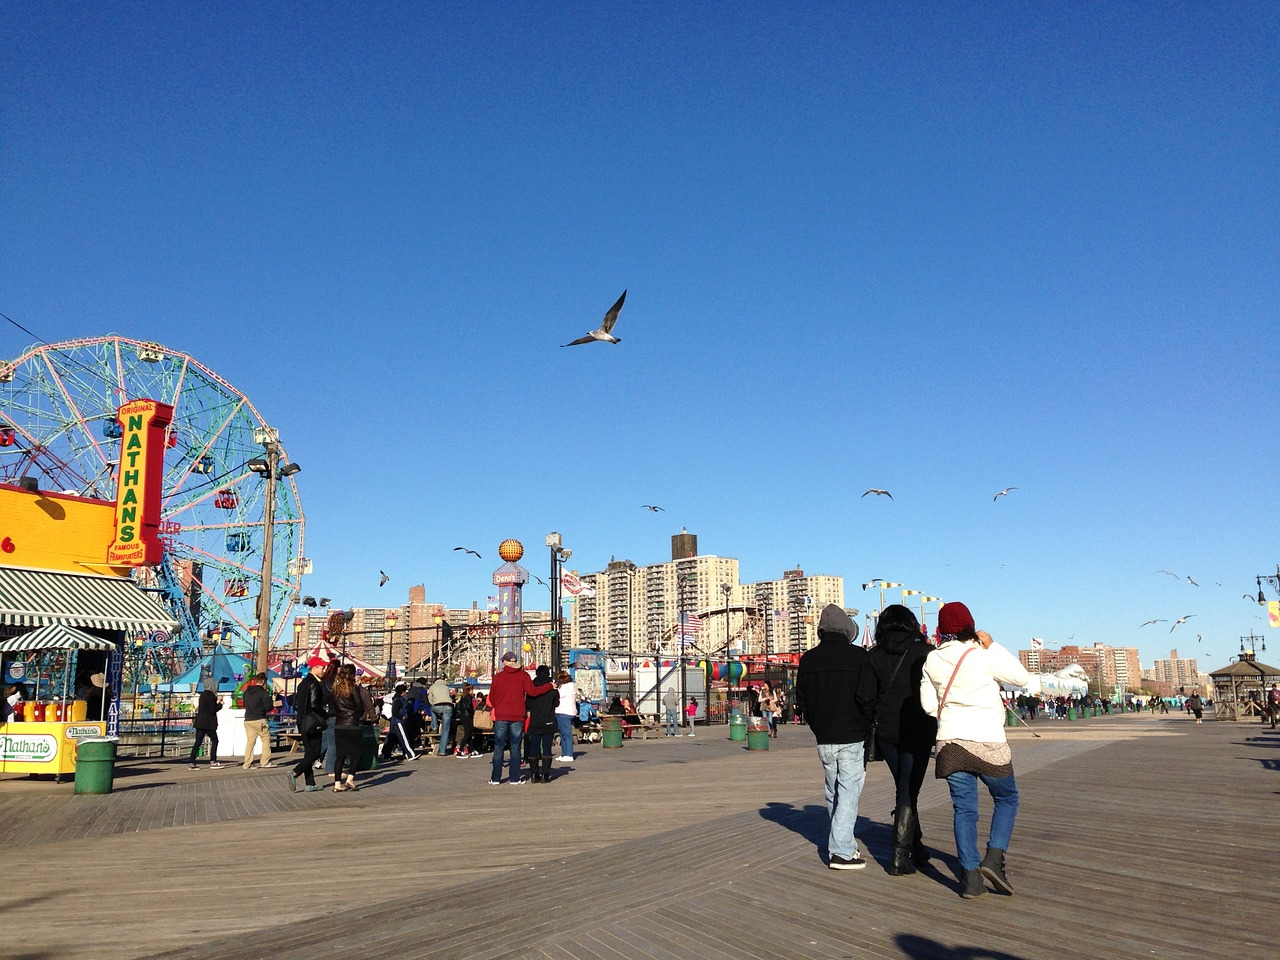 coney-island-beach-990456_1280